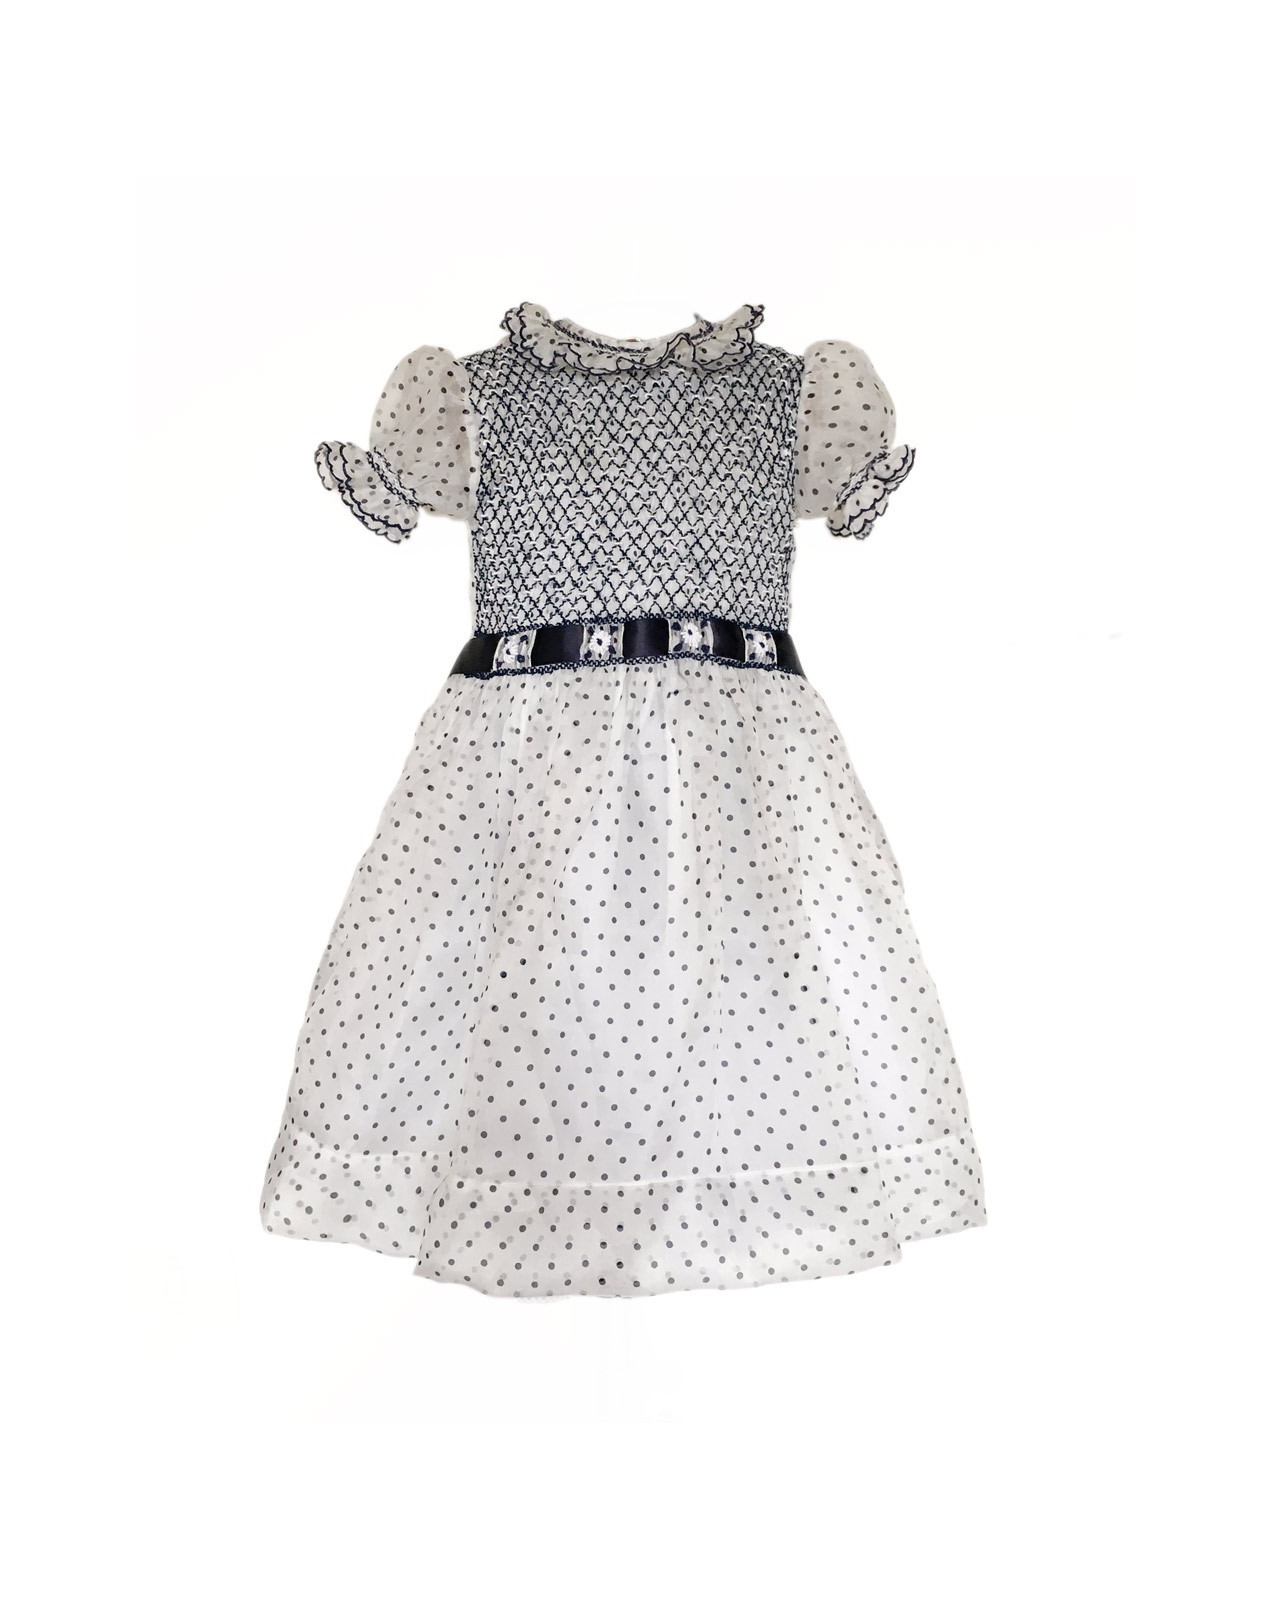 Flower girl smocked dress Audrey